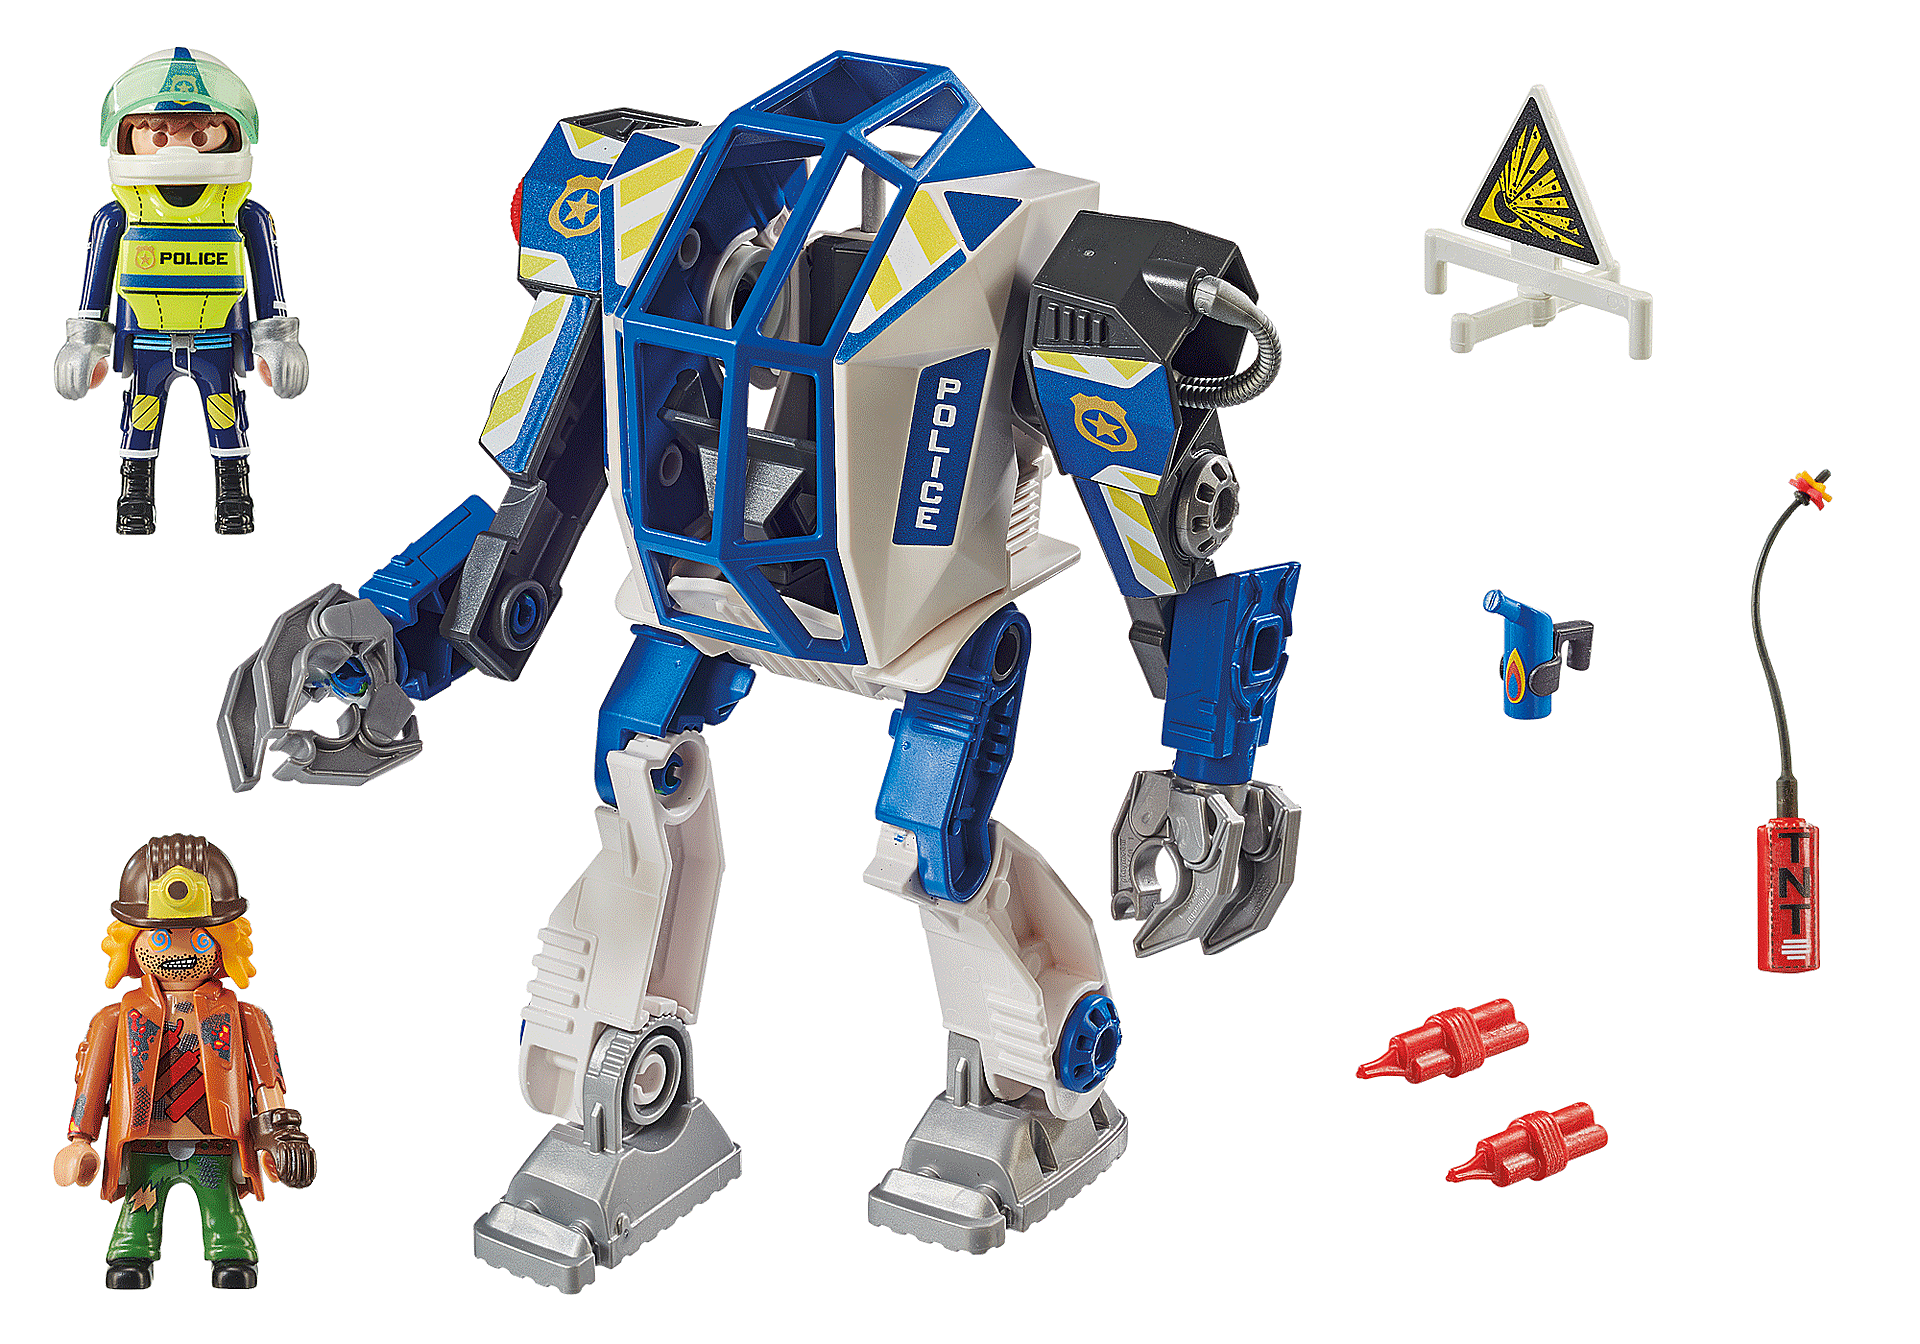 70571 Special Operations Police Robot zoom image3